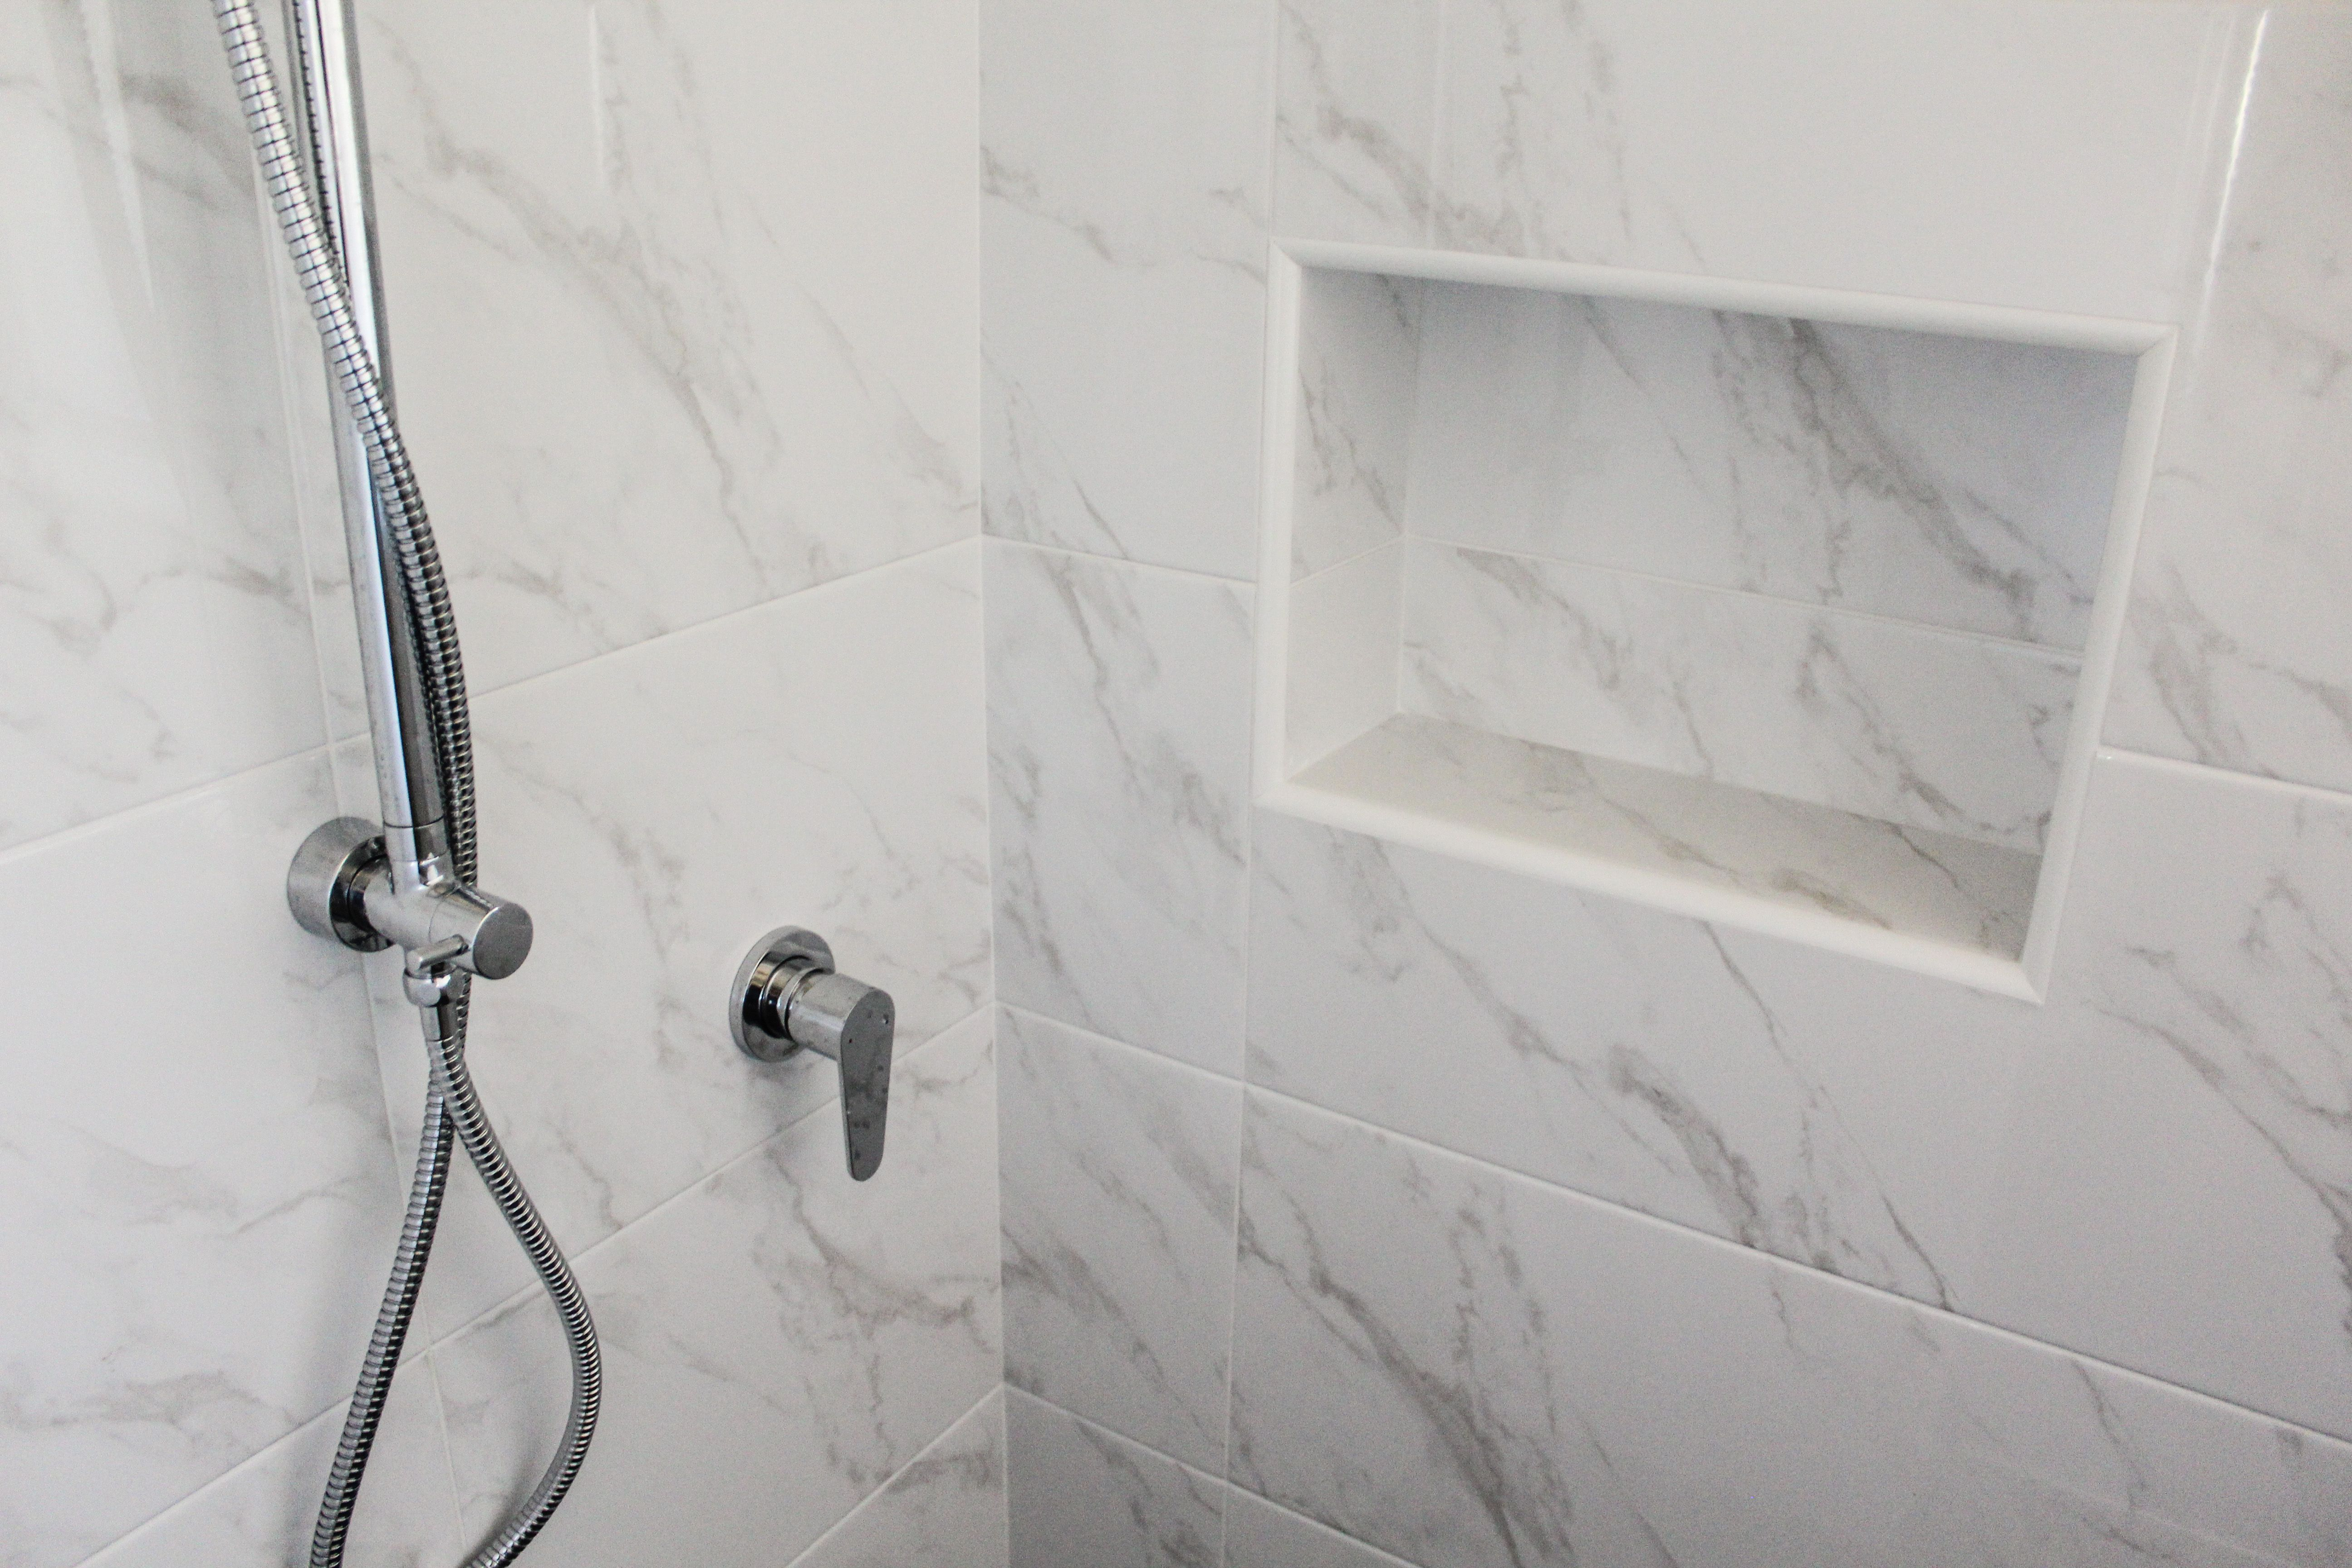 tega cay bathroom remodel pic and inspiring master styles for nsyd storage concept showers means added shower